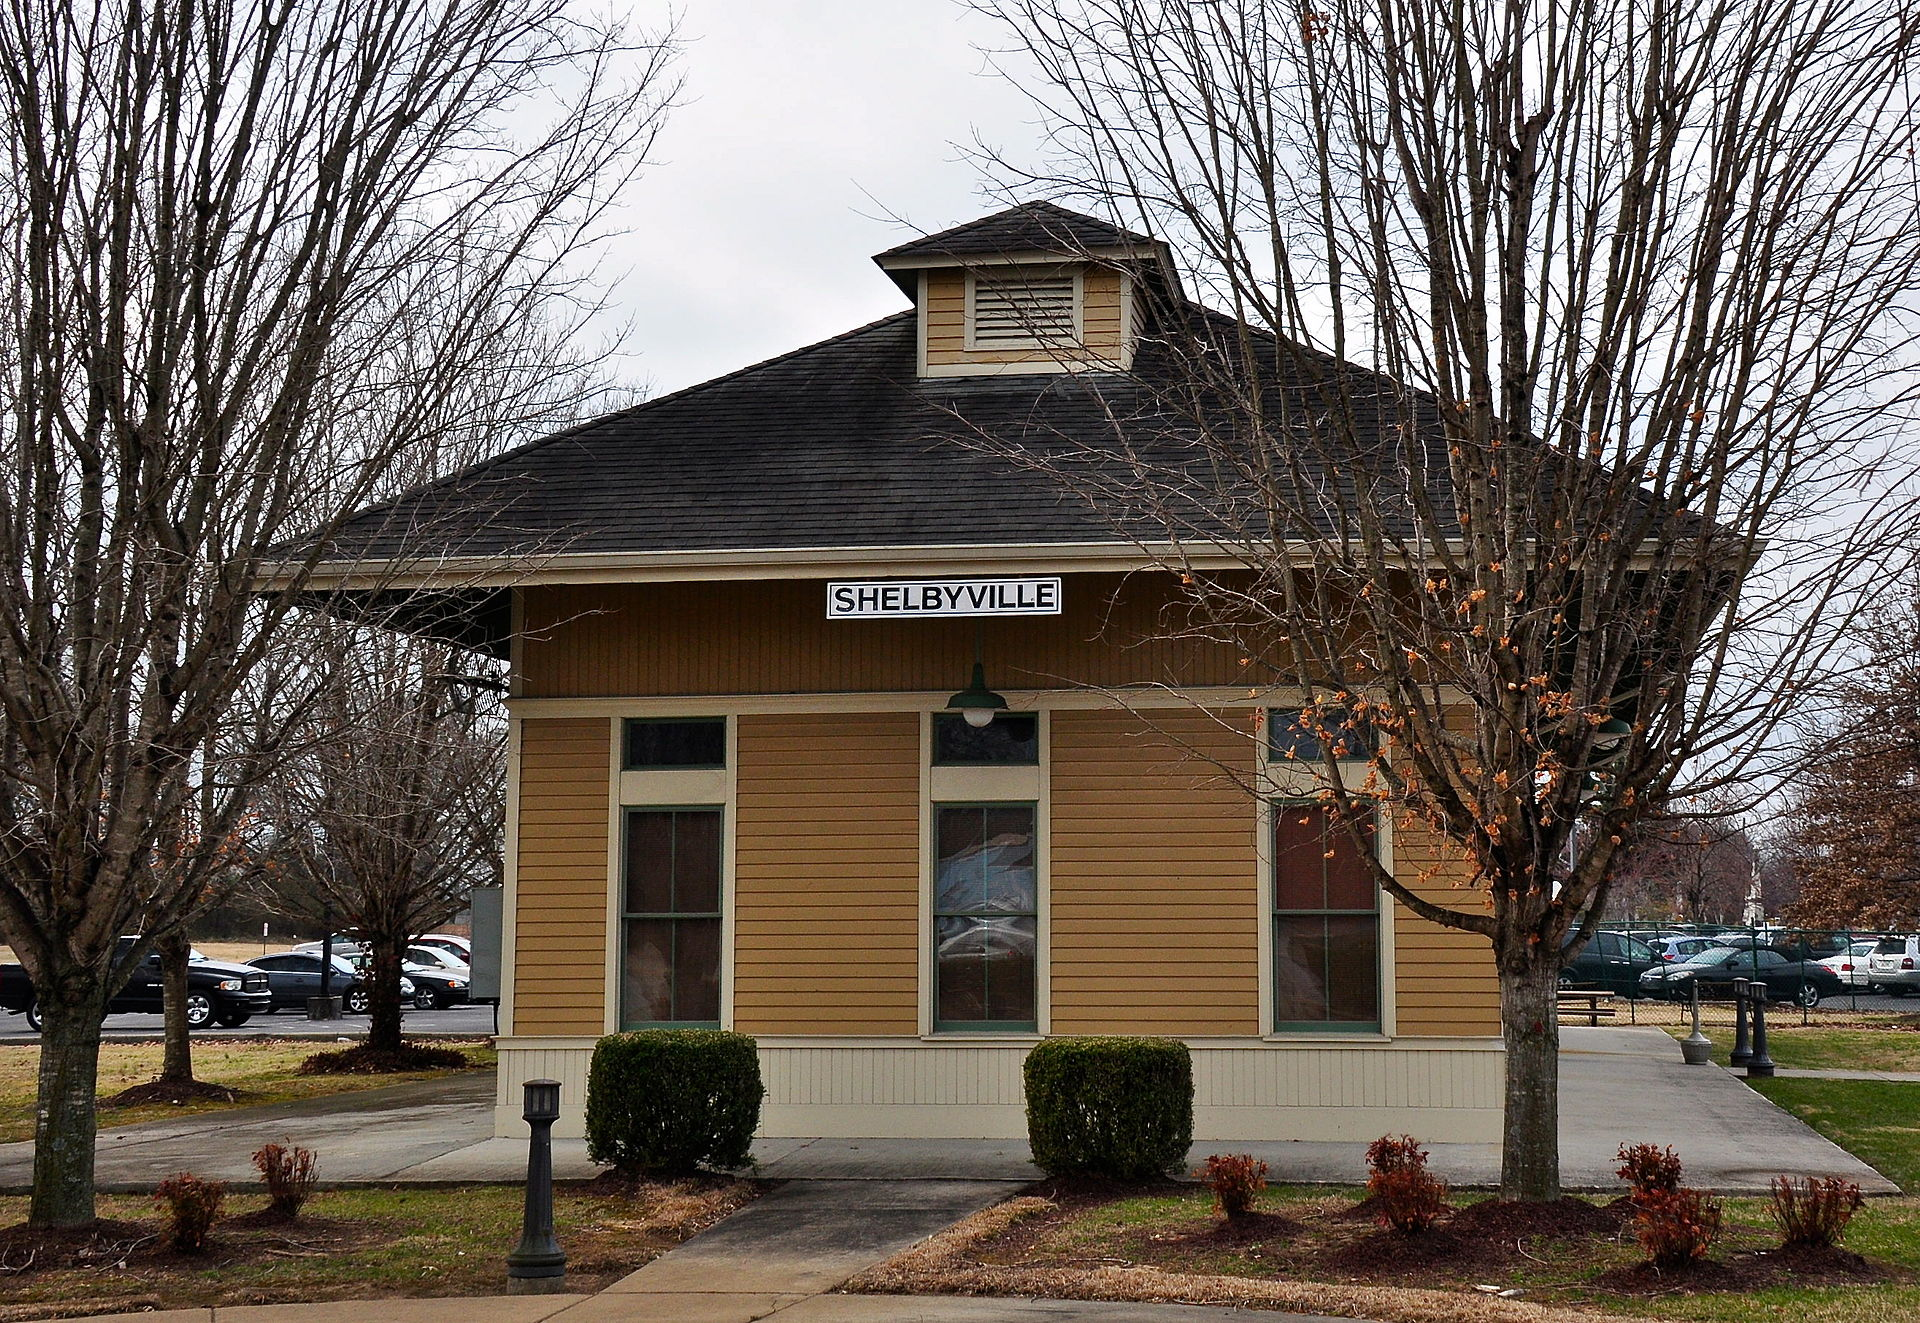 Shelbyville_Railroad_Station